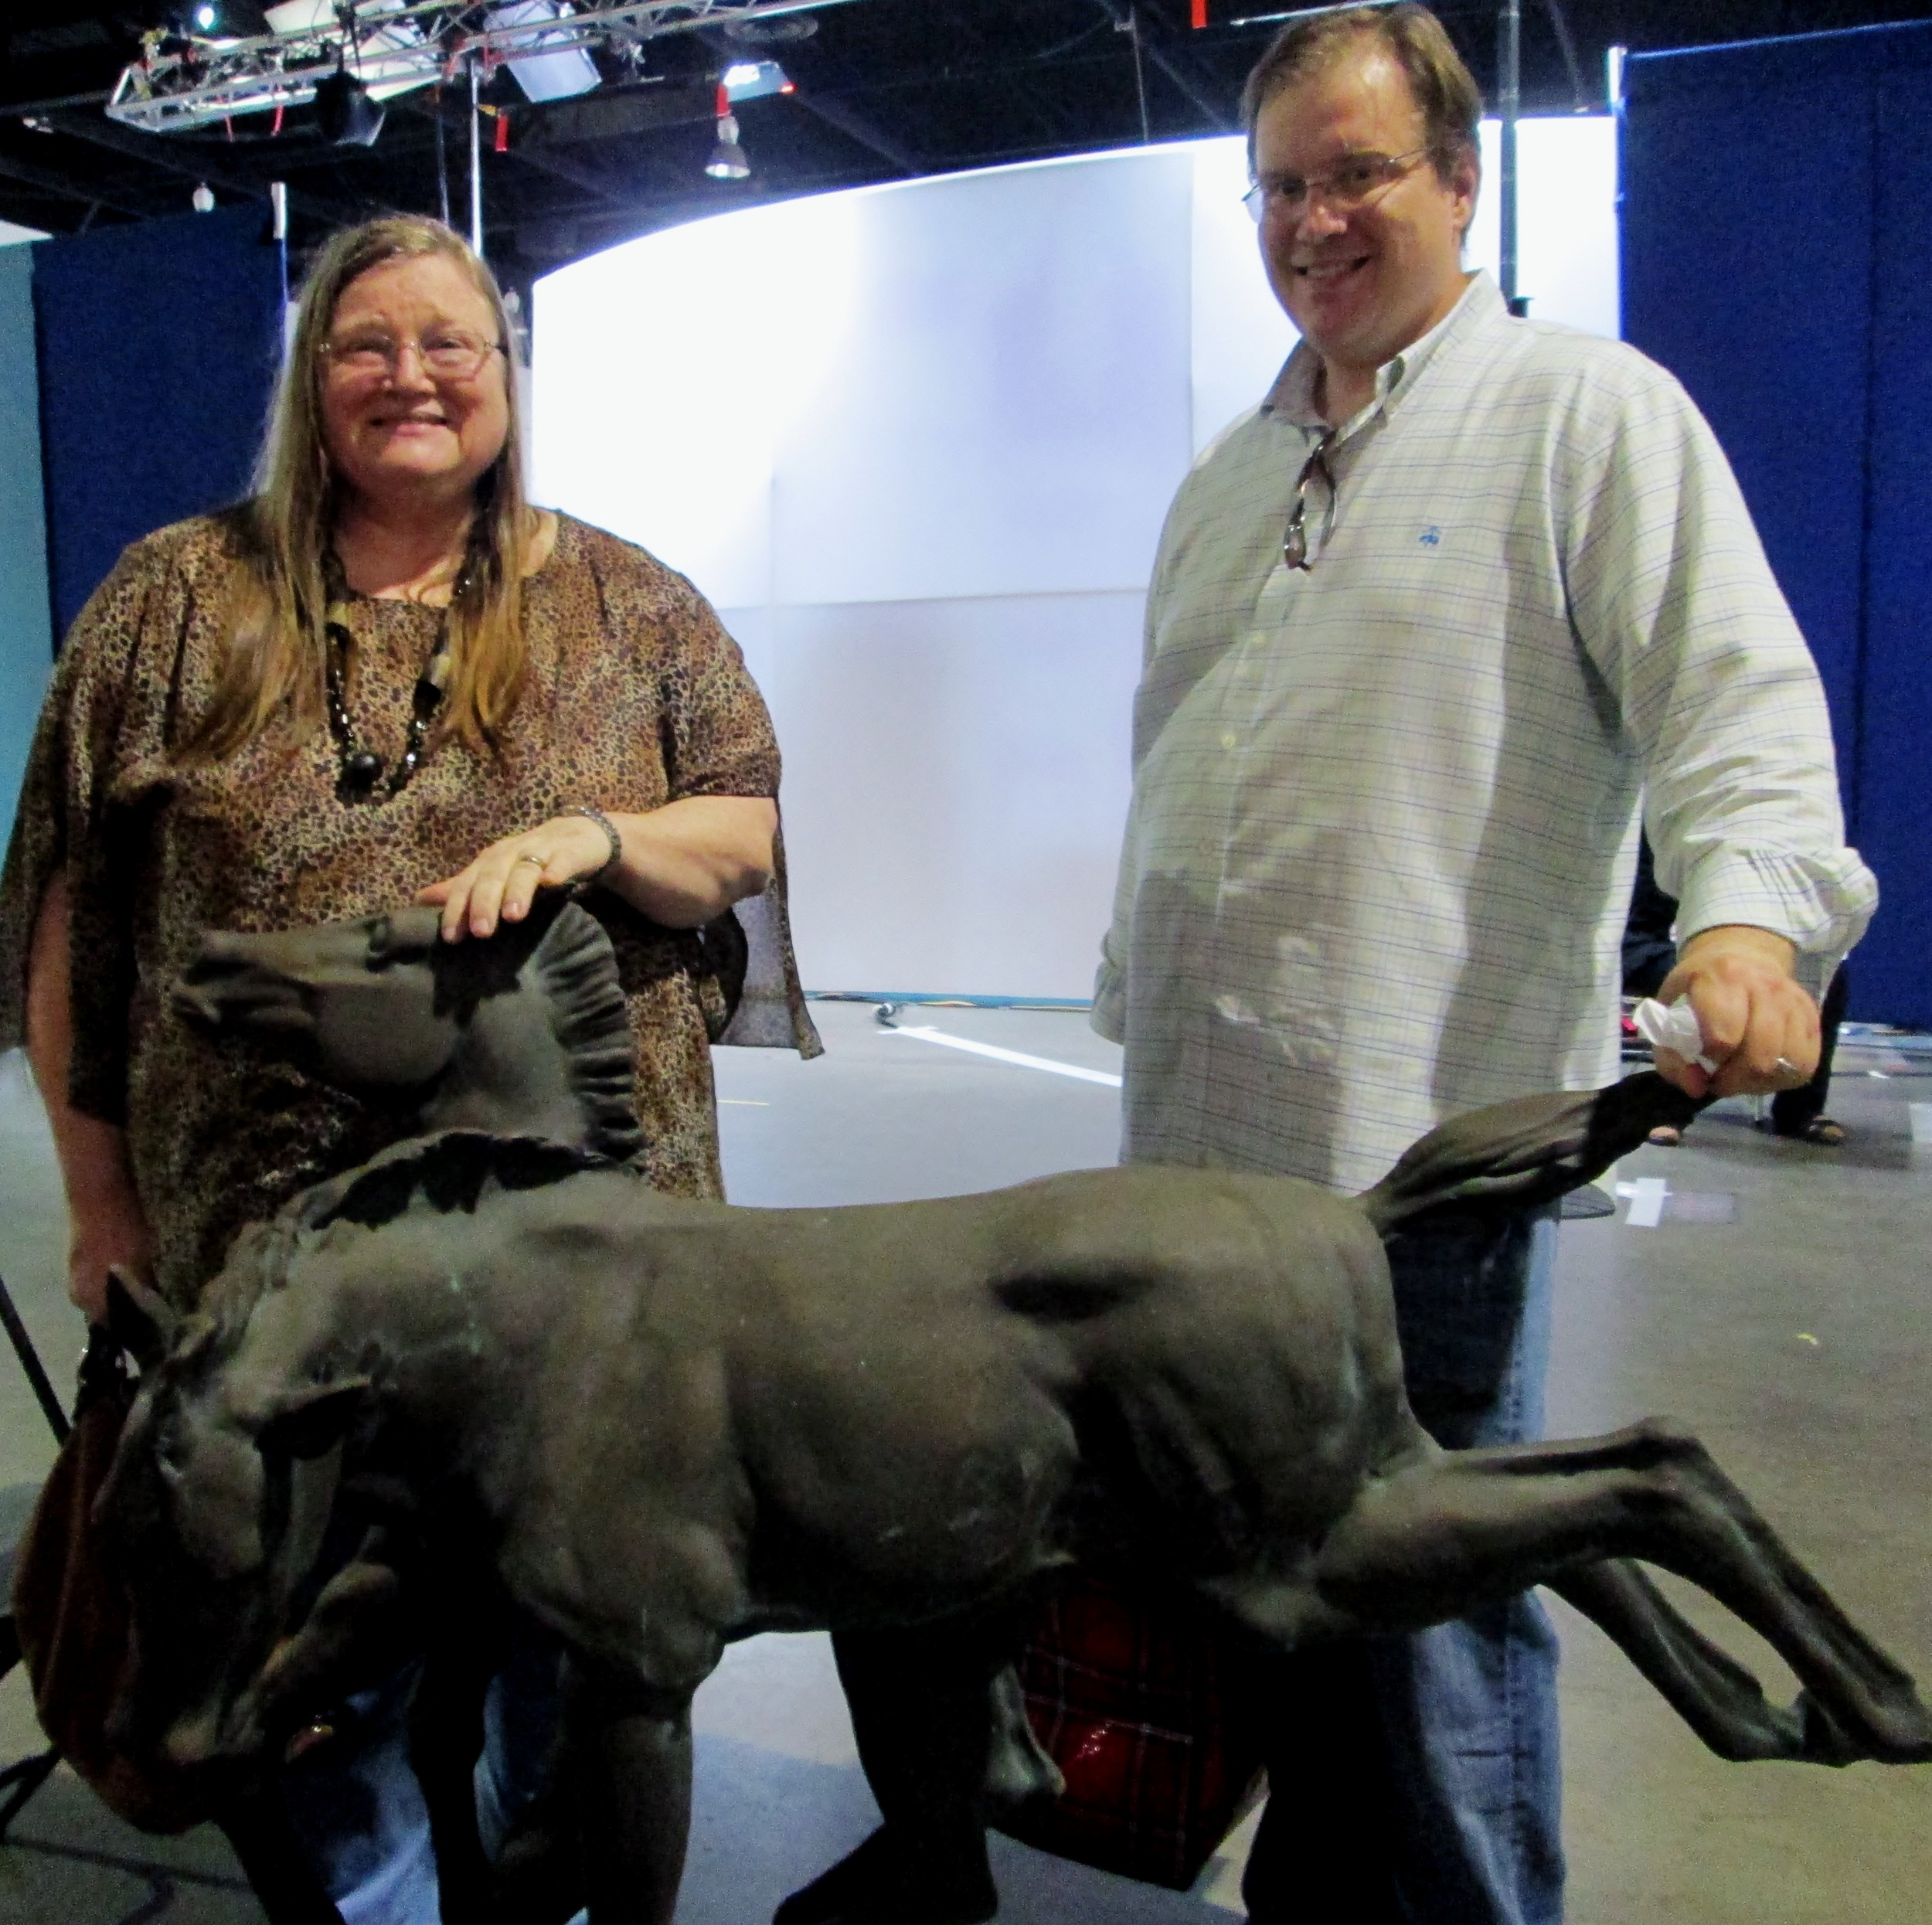 1861's bronze horse Kristine and Greg bought at an antique shop at the Beaches 15 years ago